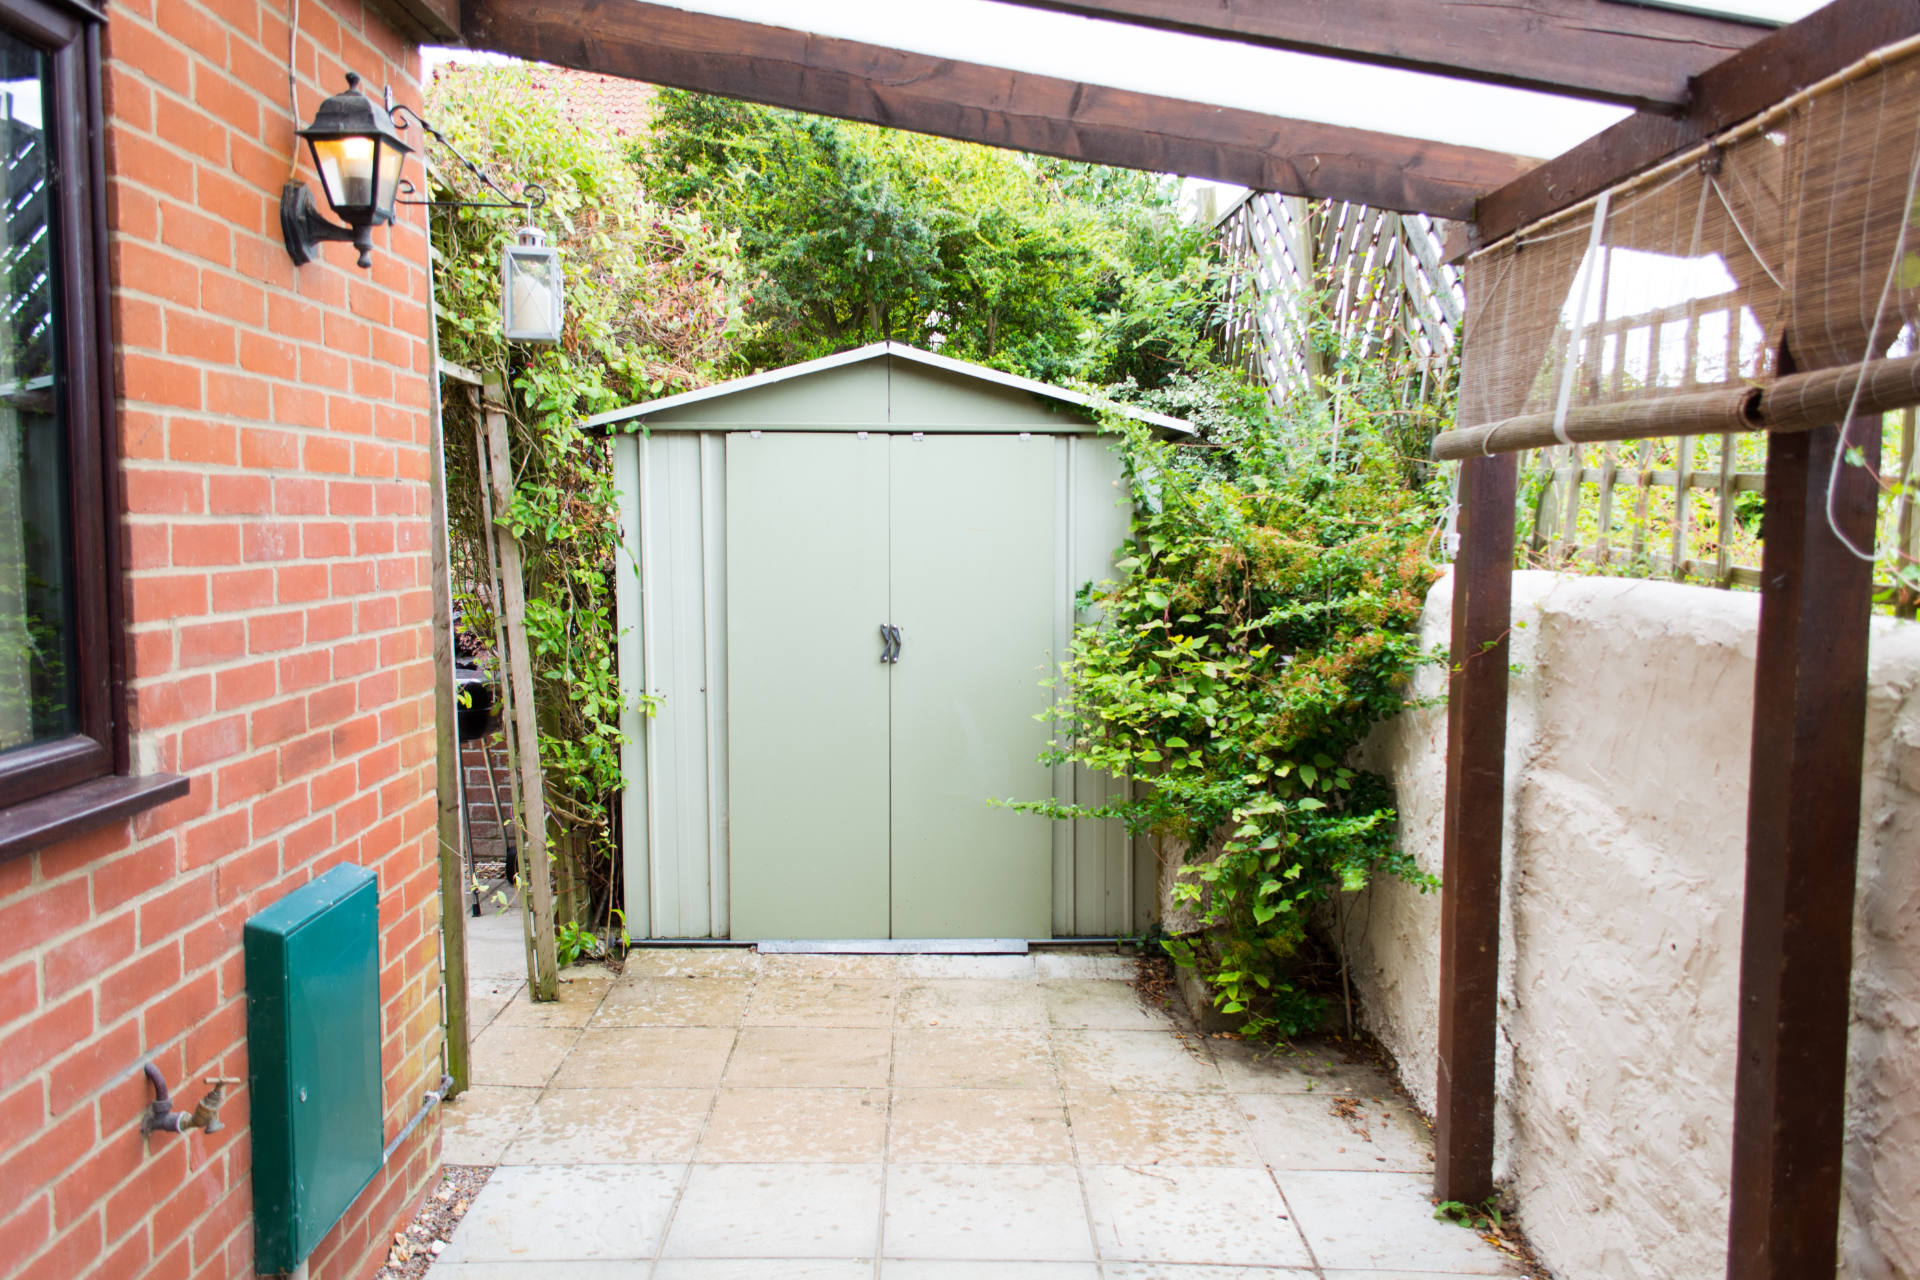 Holiday home outside metal storage shed.